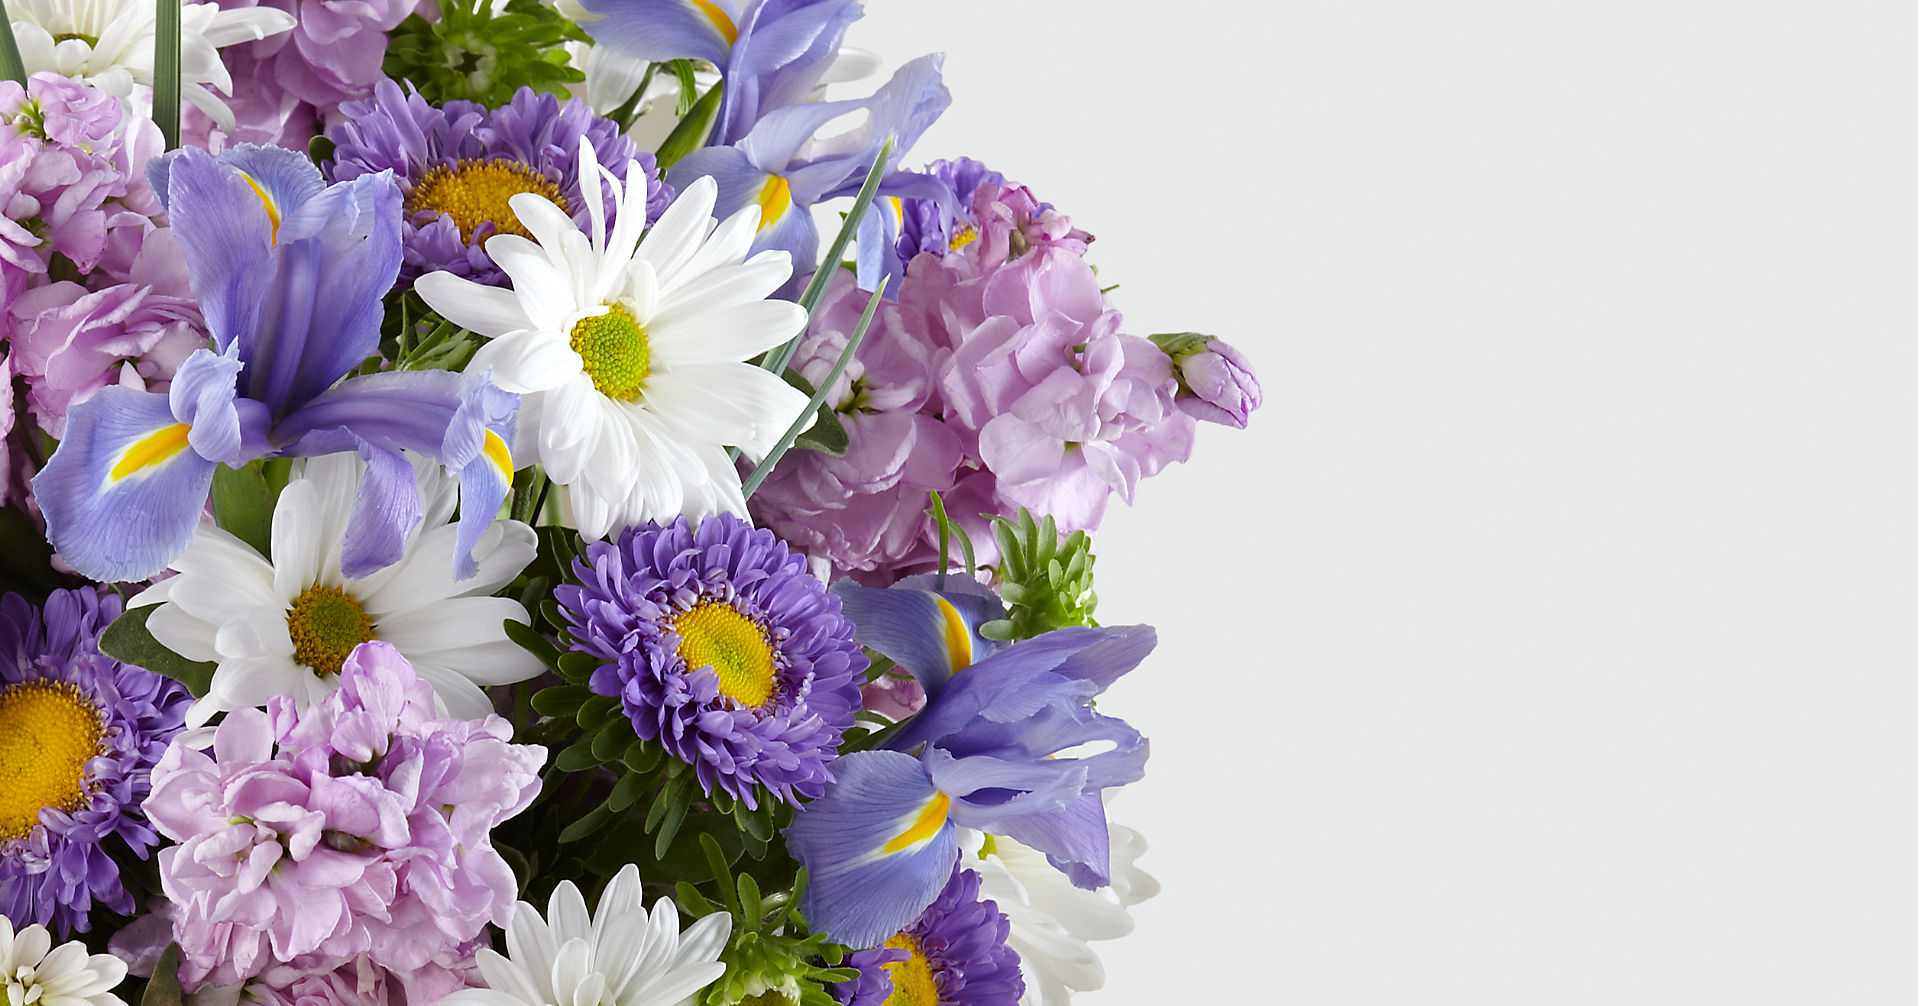 Cottage Garden™ Bouquet by Better Homes and Garden® - VASE INCLUDED - Image 2 Of 2